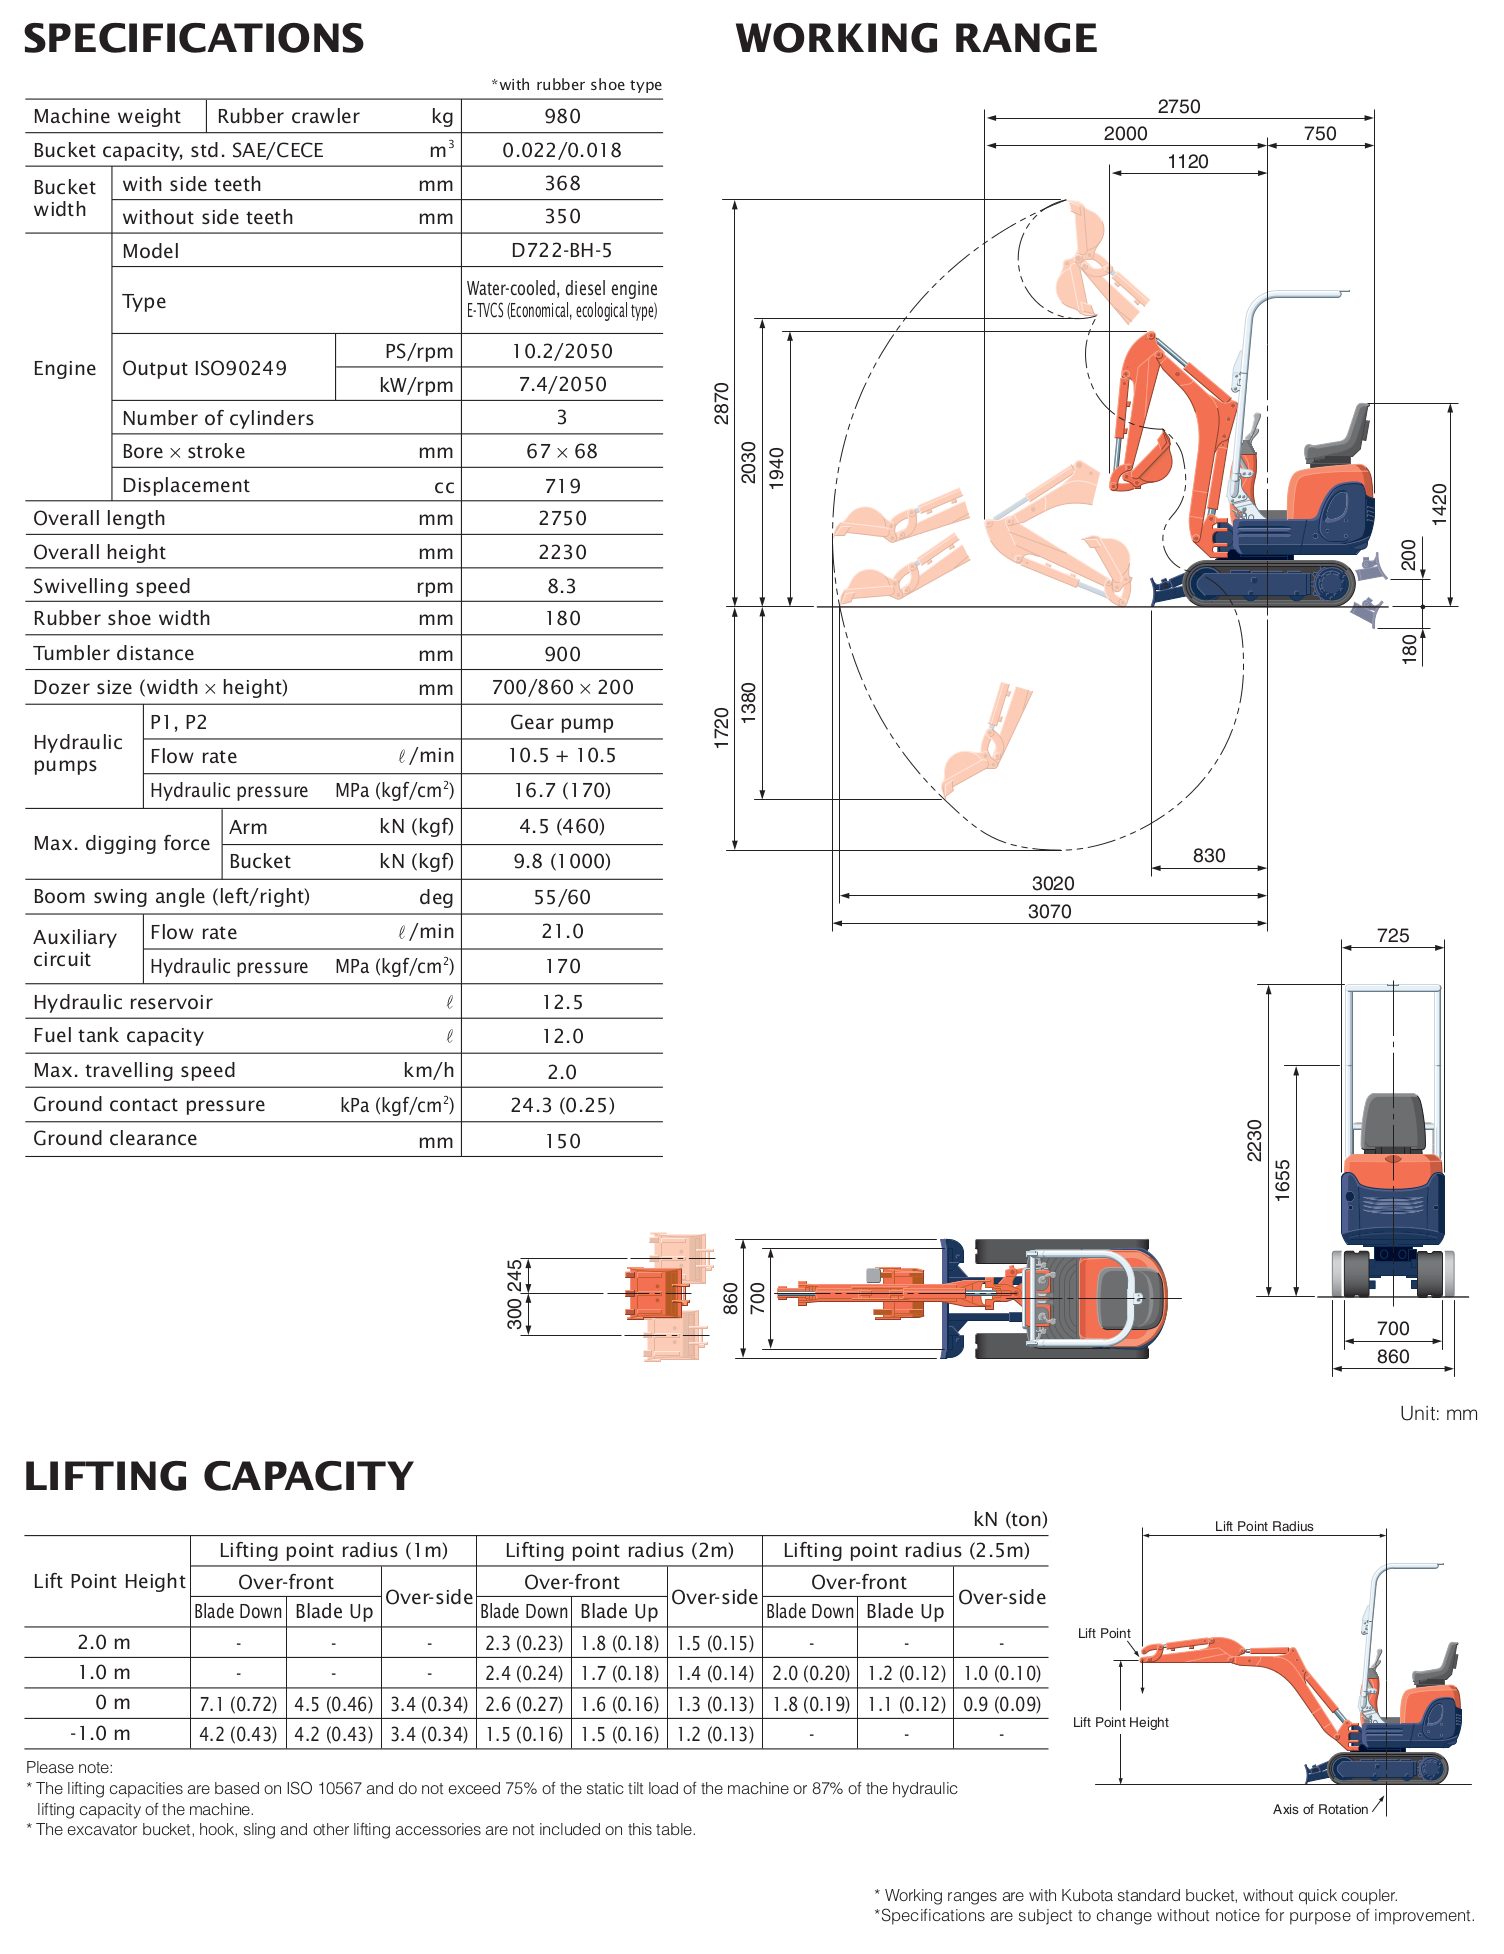 Mini Excavator / Digger (0.8 Tonne) Specifications